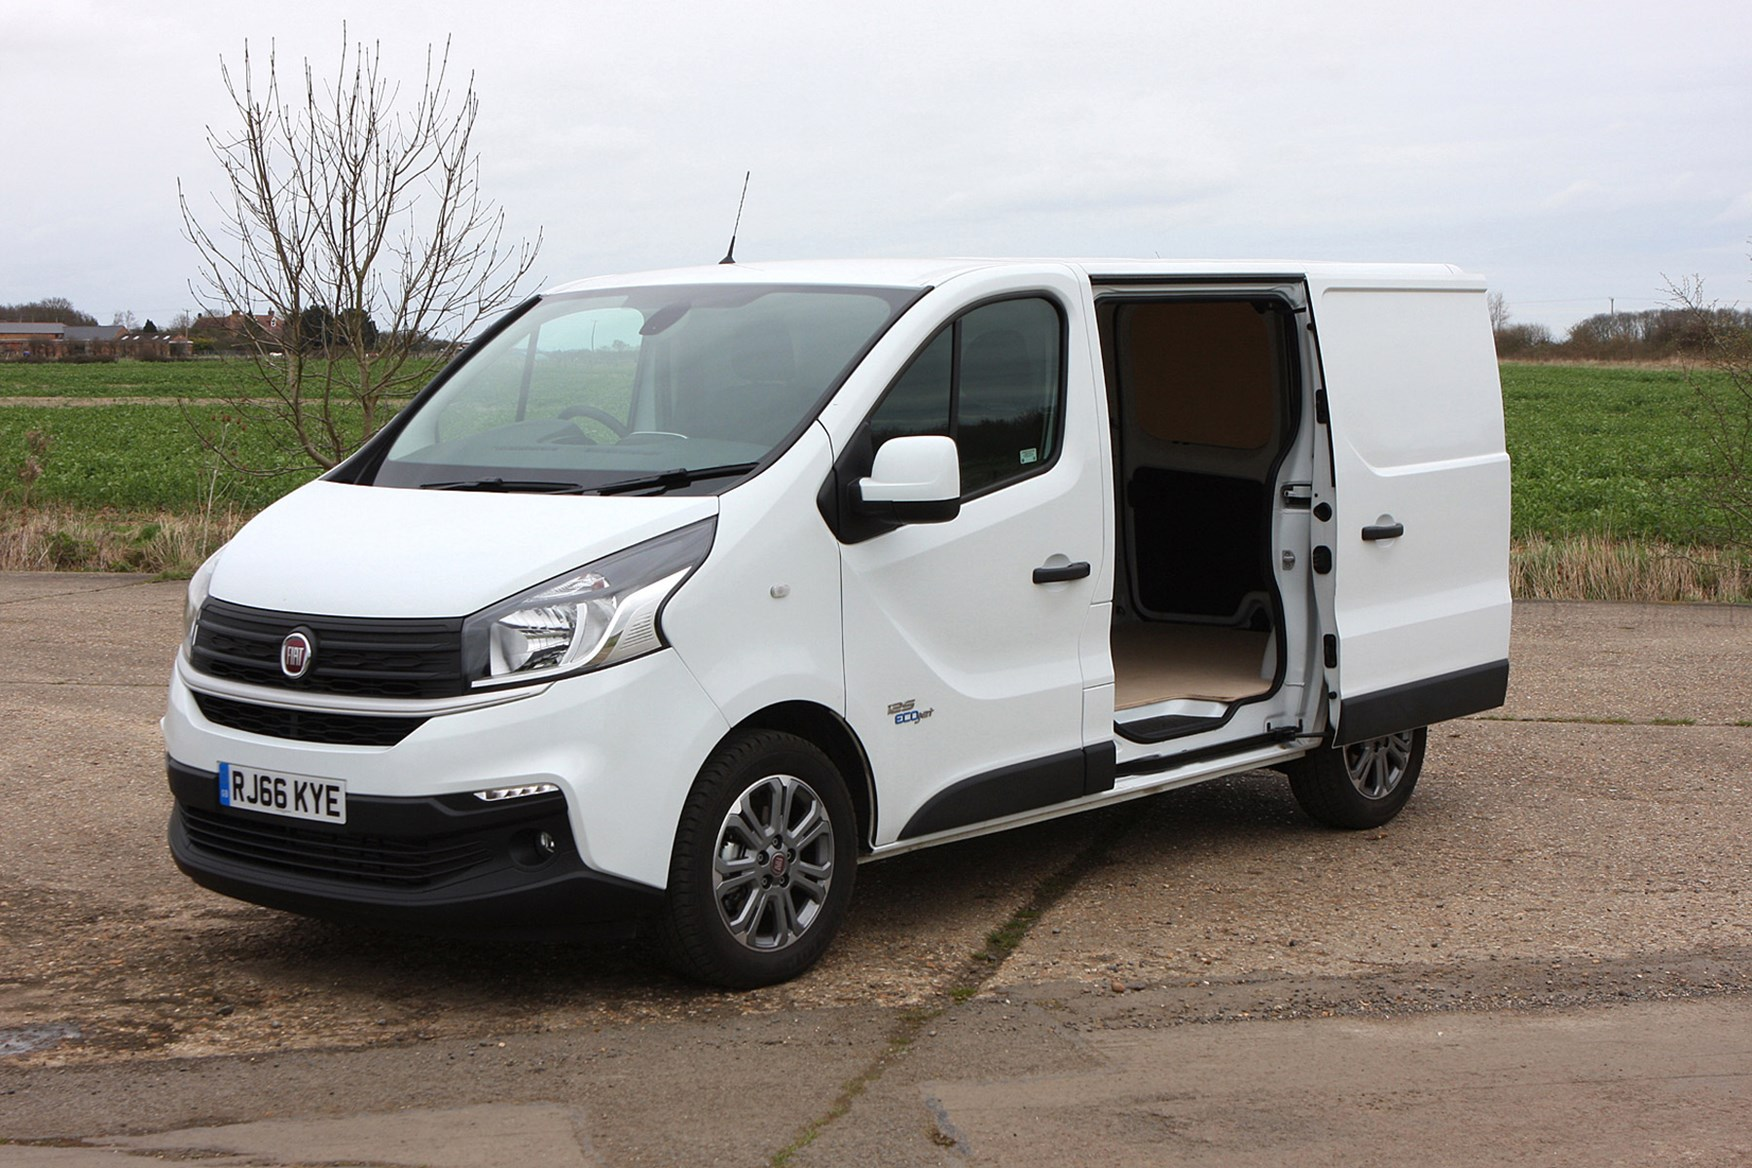 Fiat Talento 2016-on review on Parkers Vans - load area